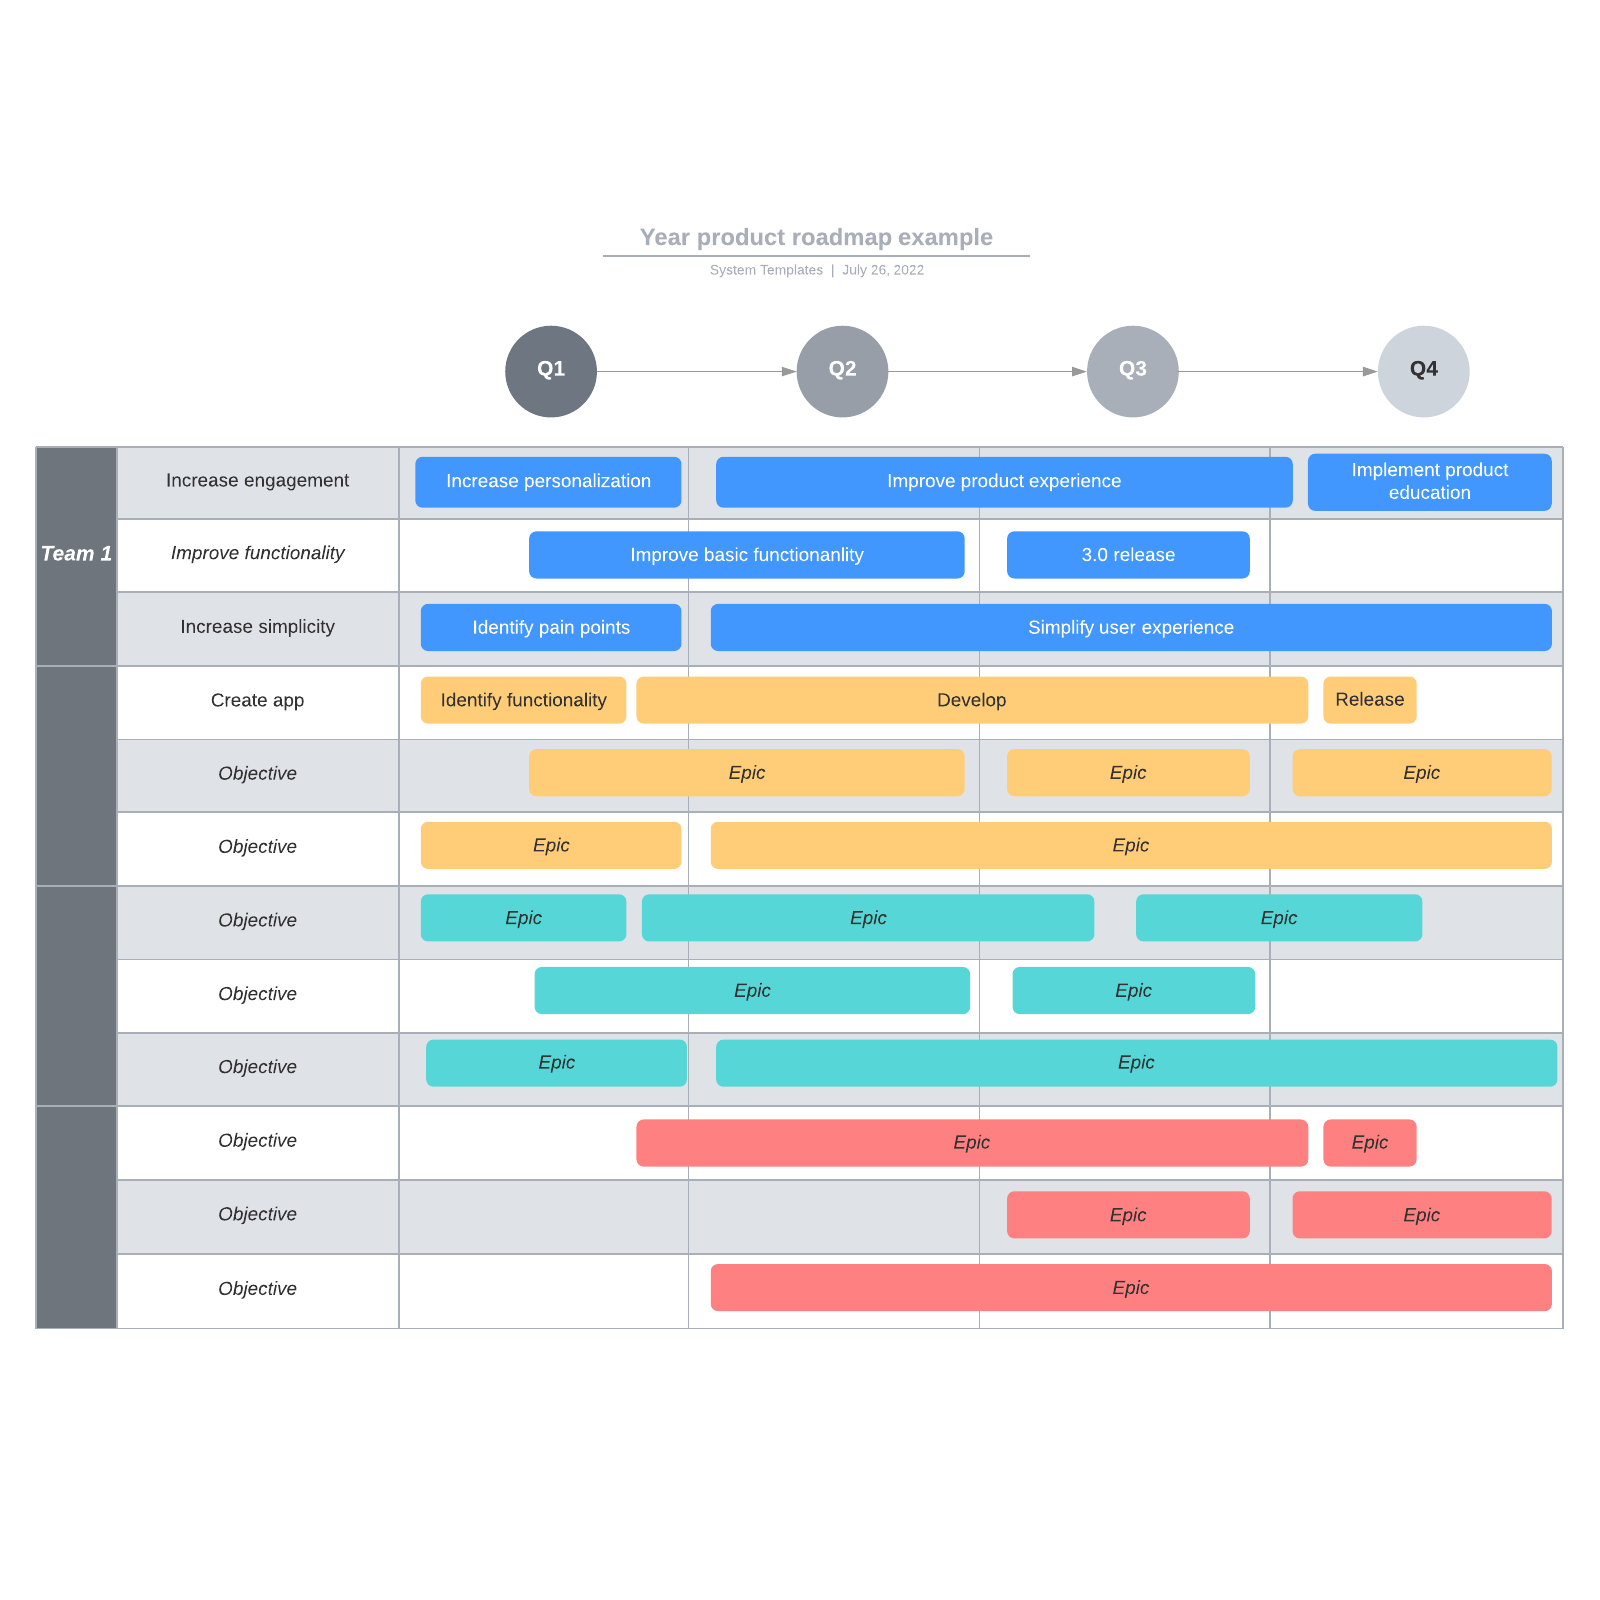 Year product roadmap example